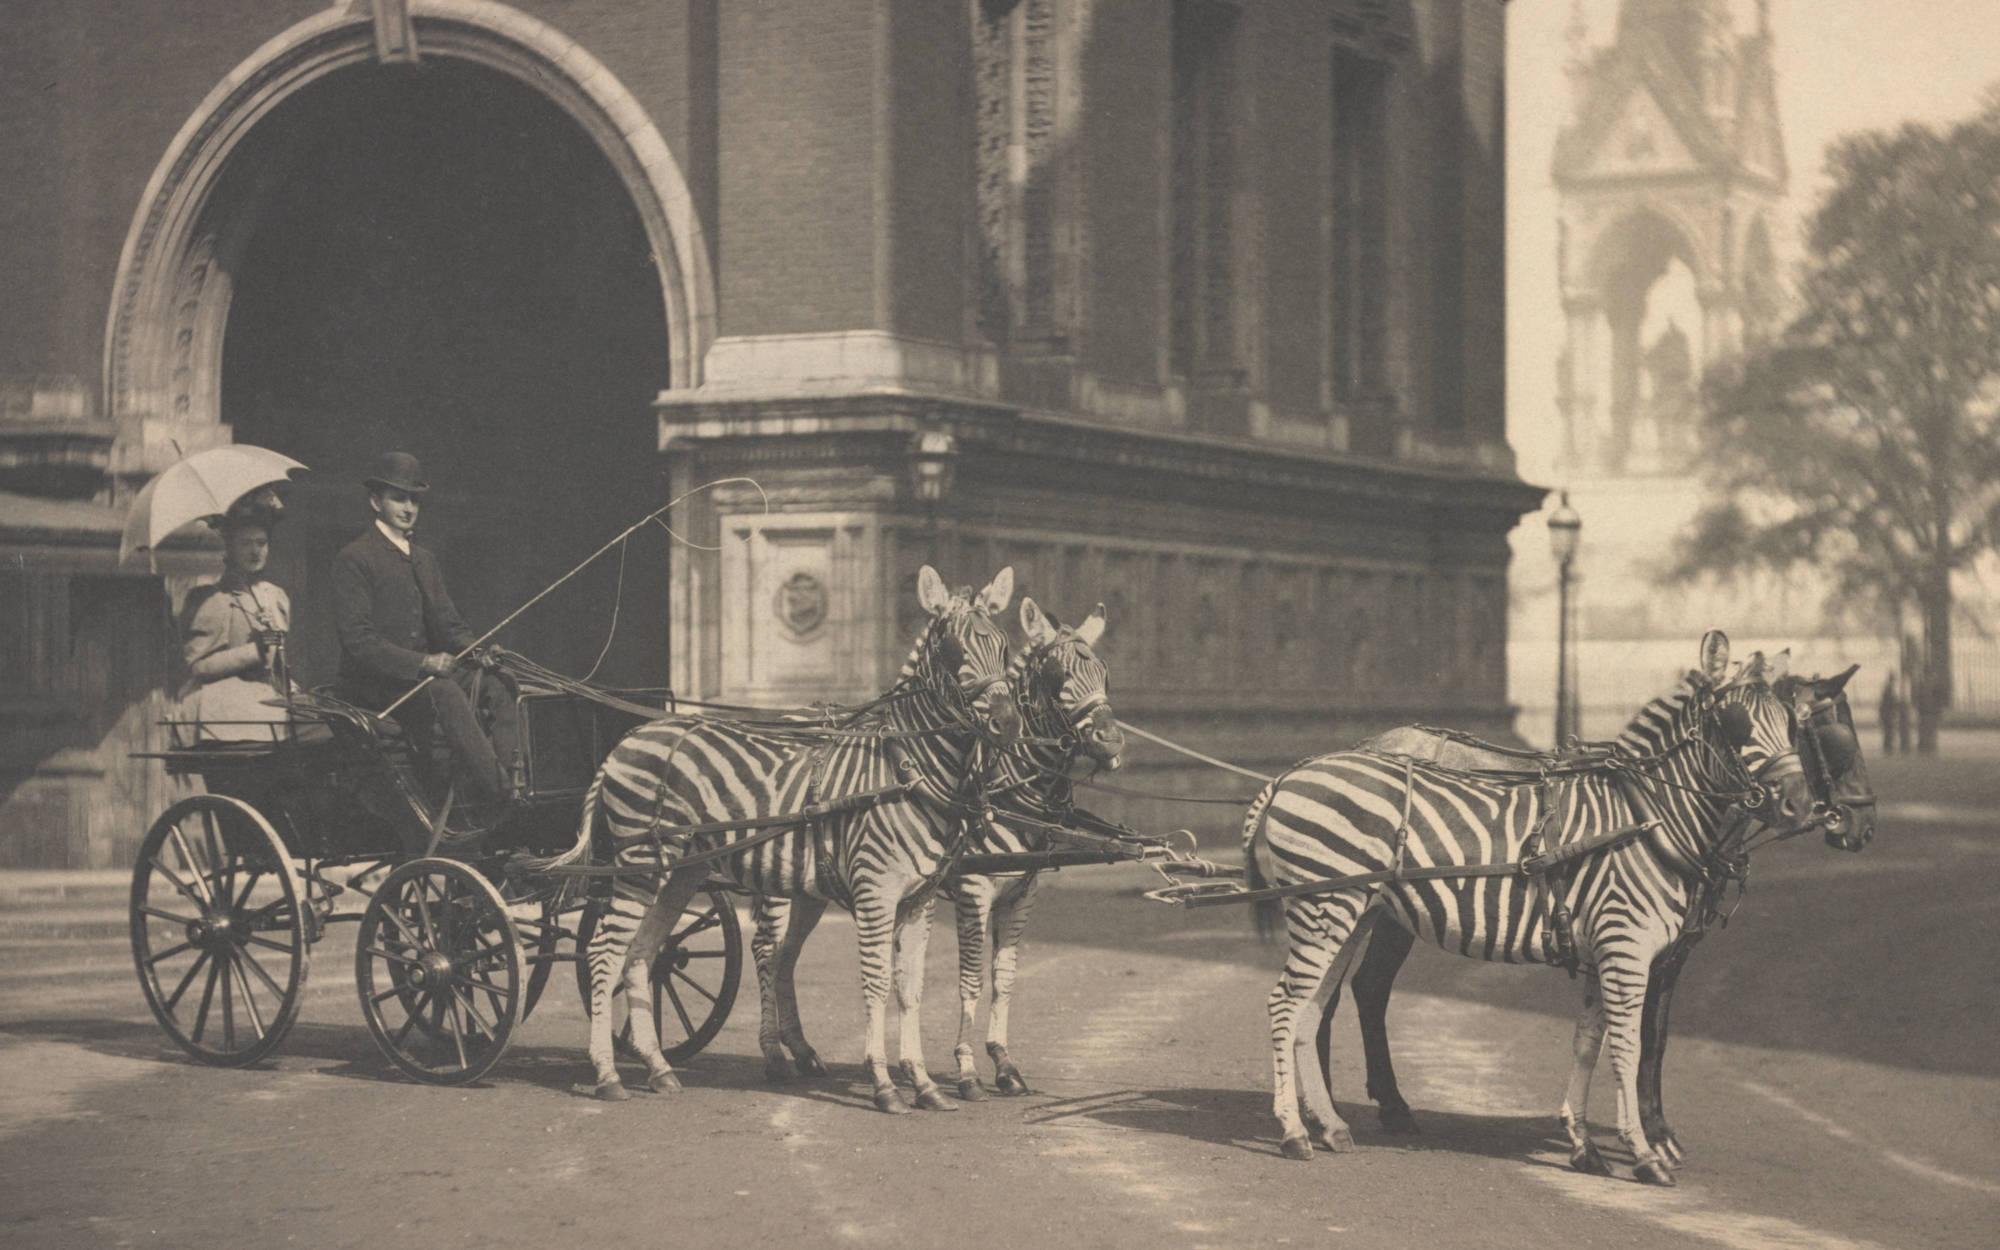 Walter Rothschild with zebras drawing his carriage